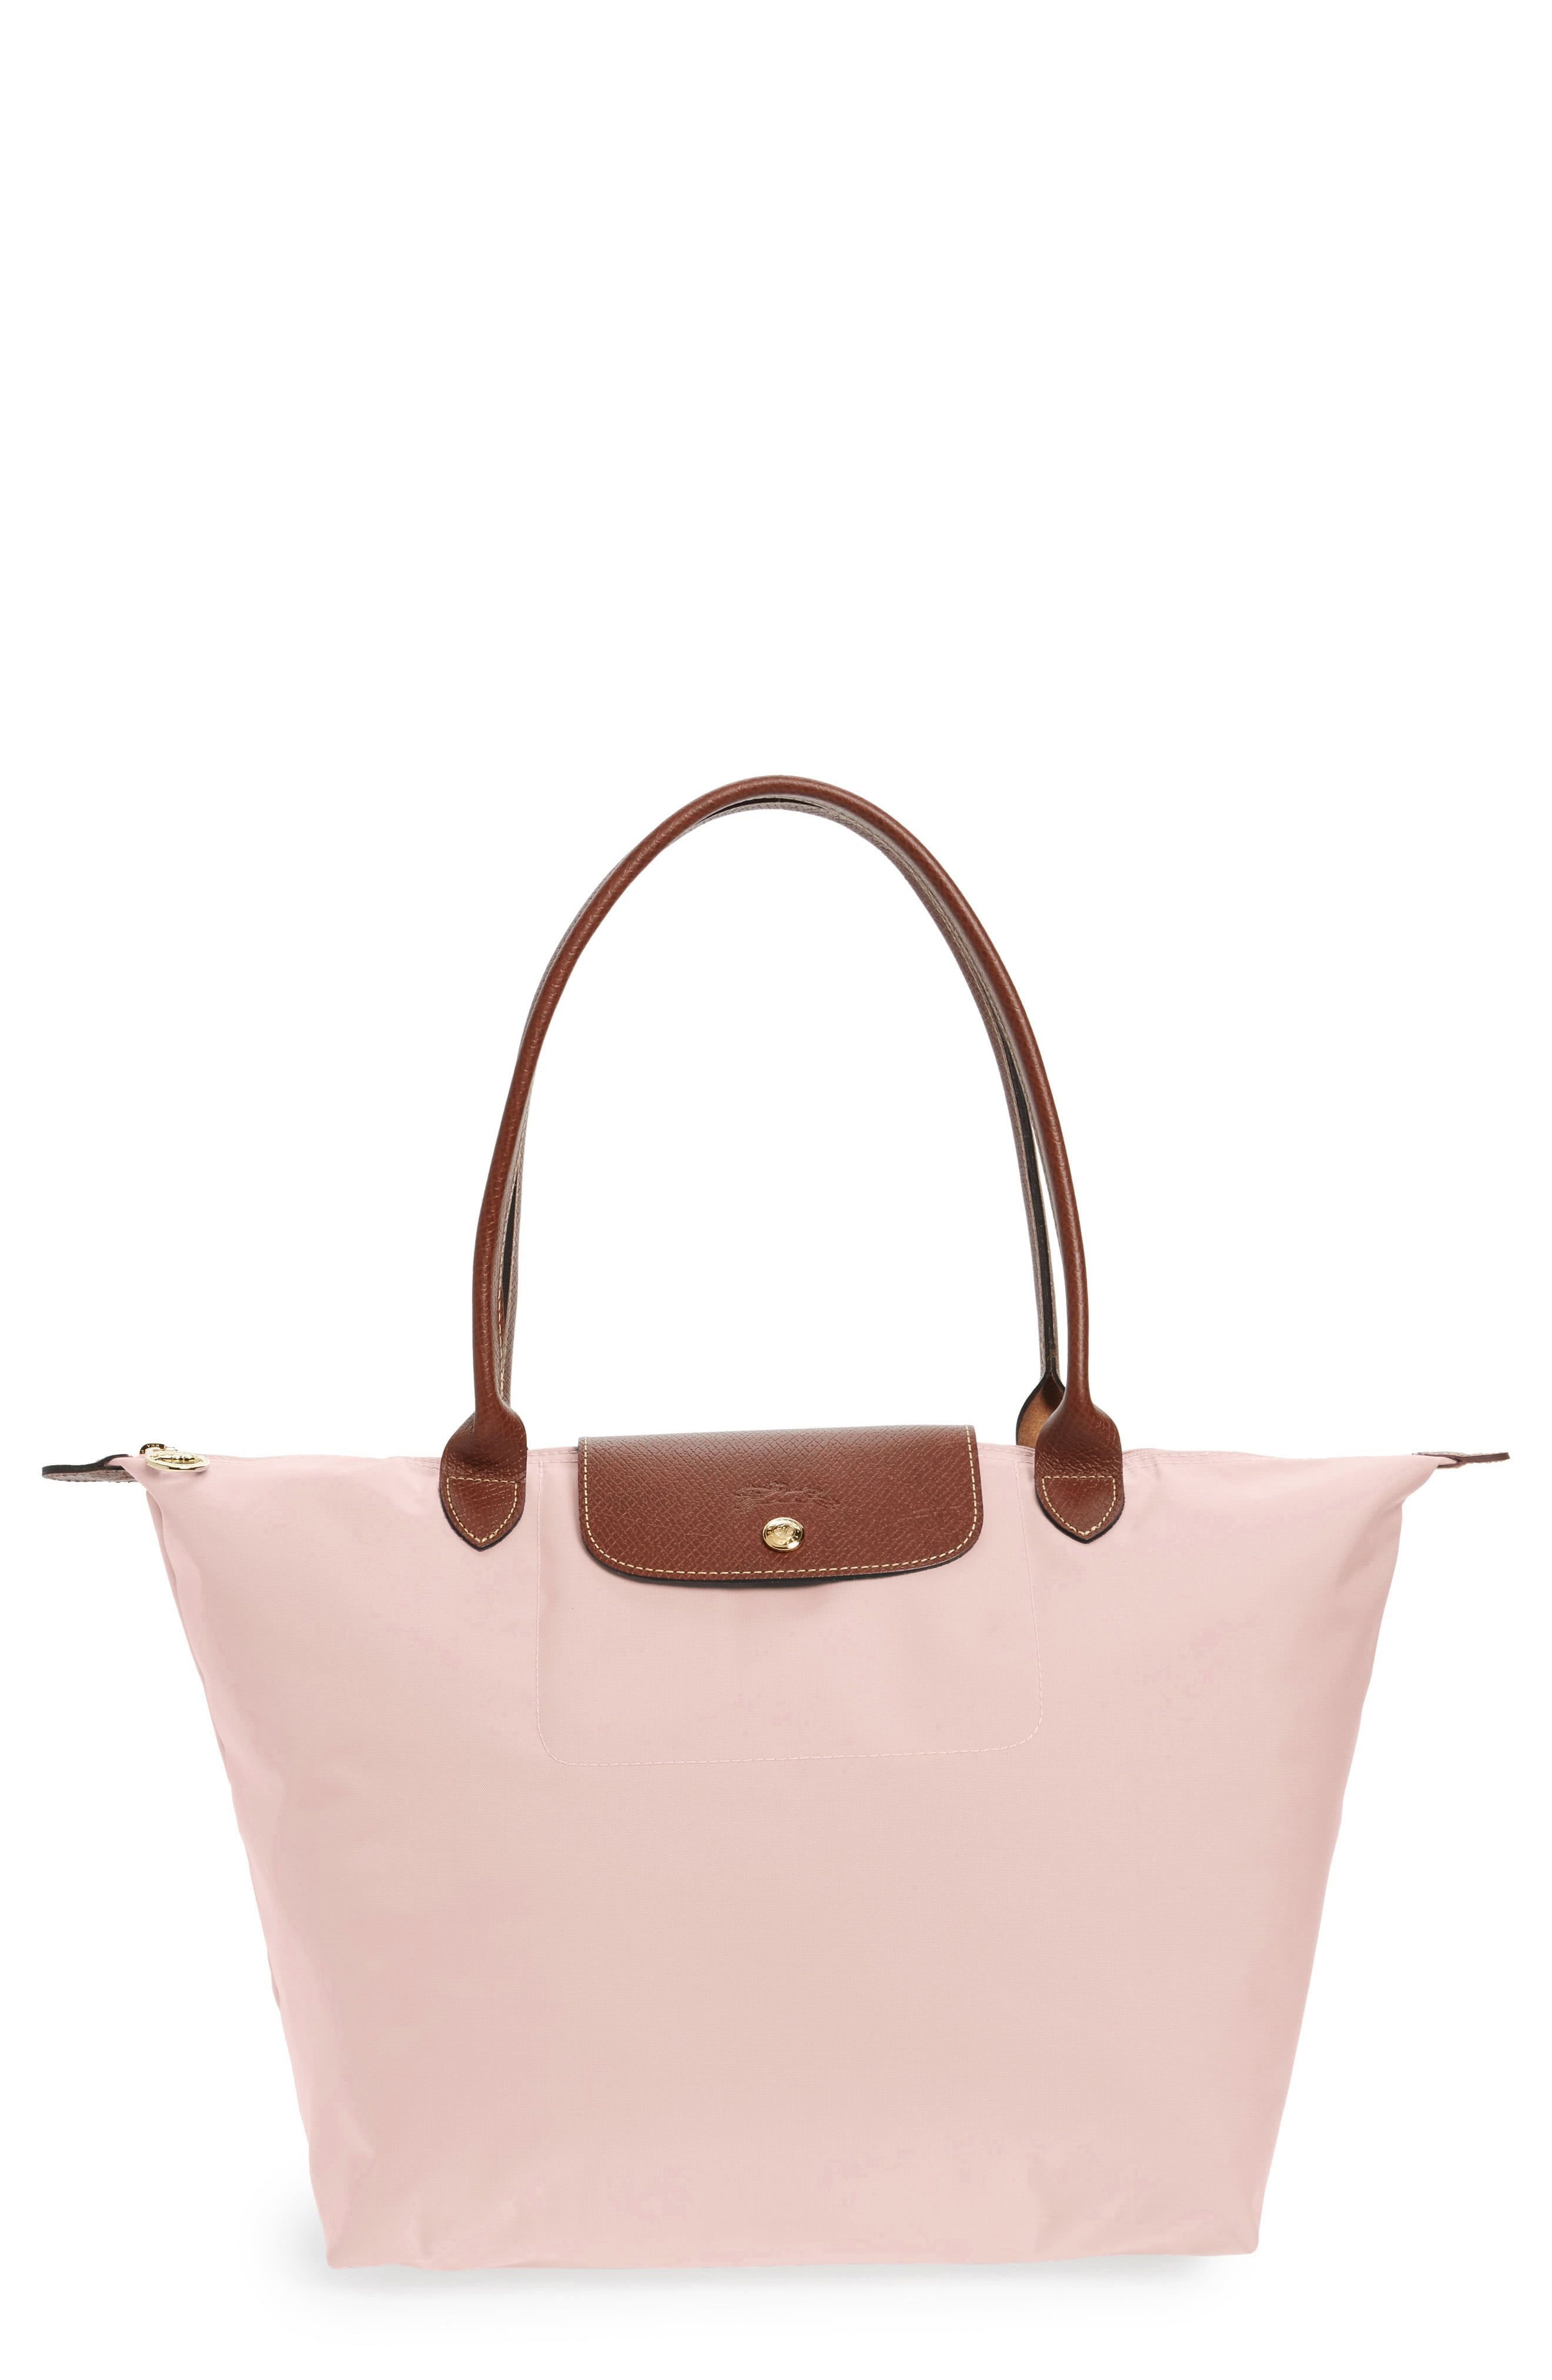 1c349b2d8e61 20 Totally Professional Bags That Work With Any Outfit